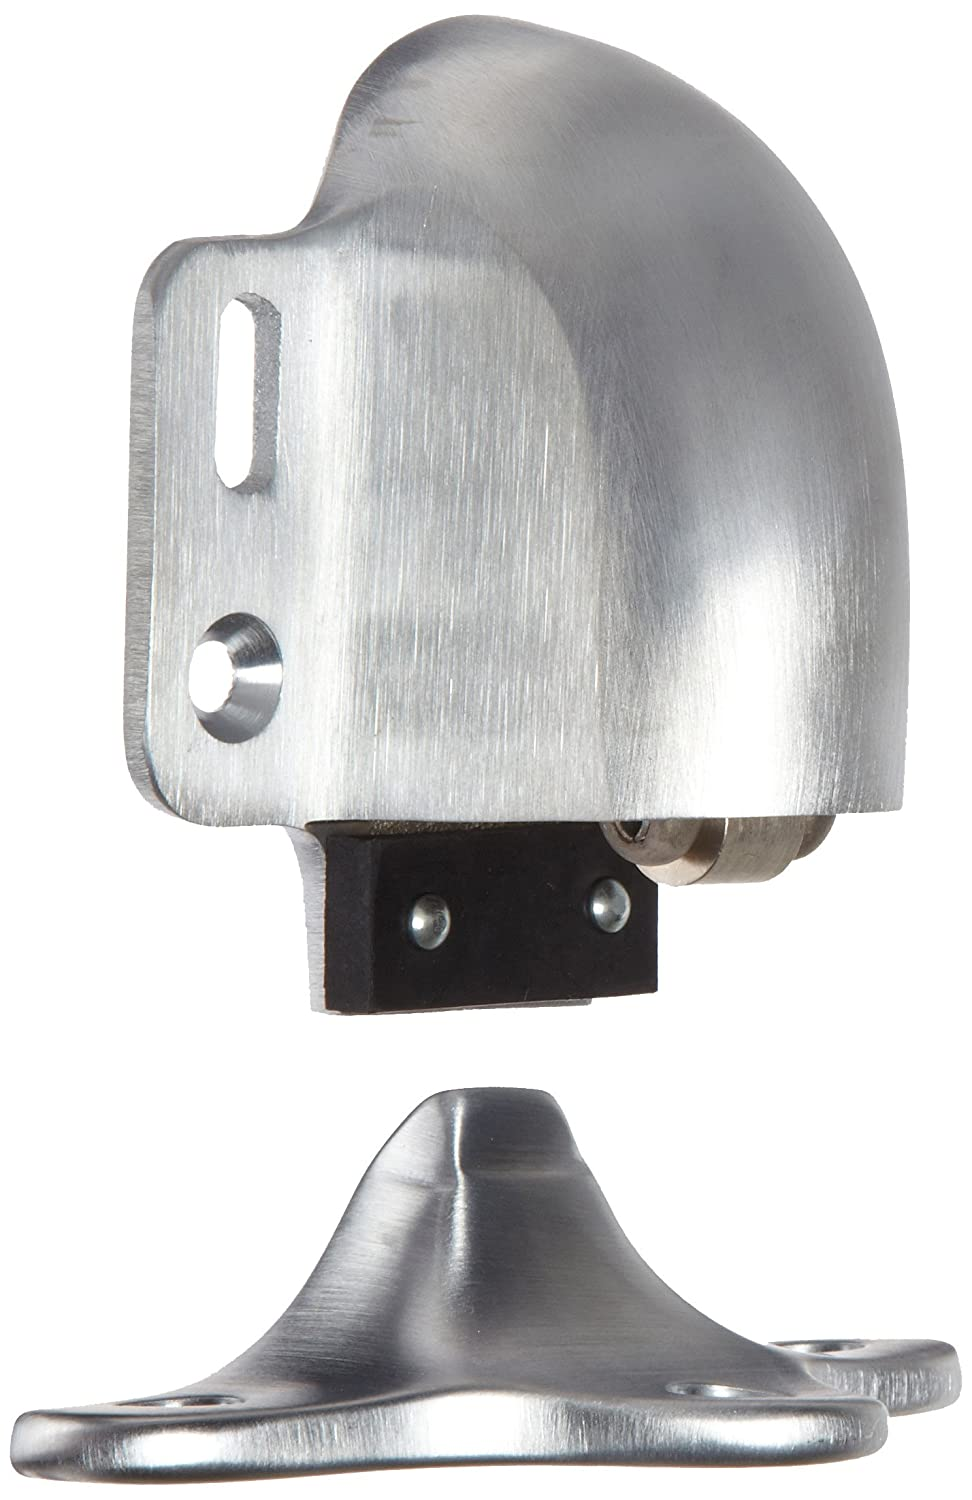 Rockwood 461L.10B Bronze Kick Down Door Stop Satin Oxidized Oil Rubbed Finish 2-1//4 Base Width x 1-1//4 Base Length 4-5//8 Projection 8 X 3//4 OH SMS Fastener